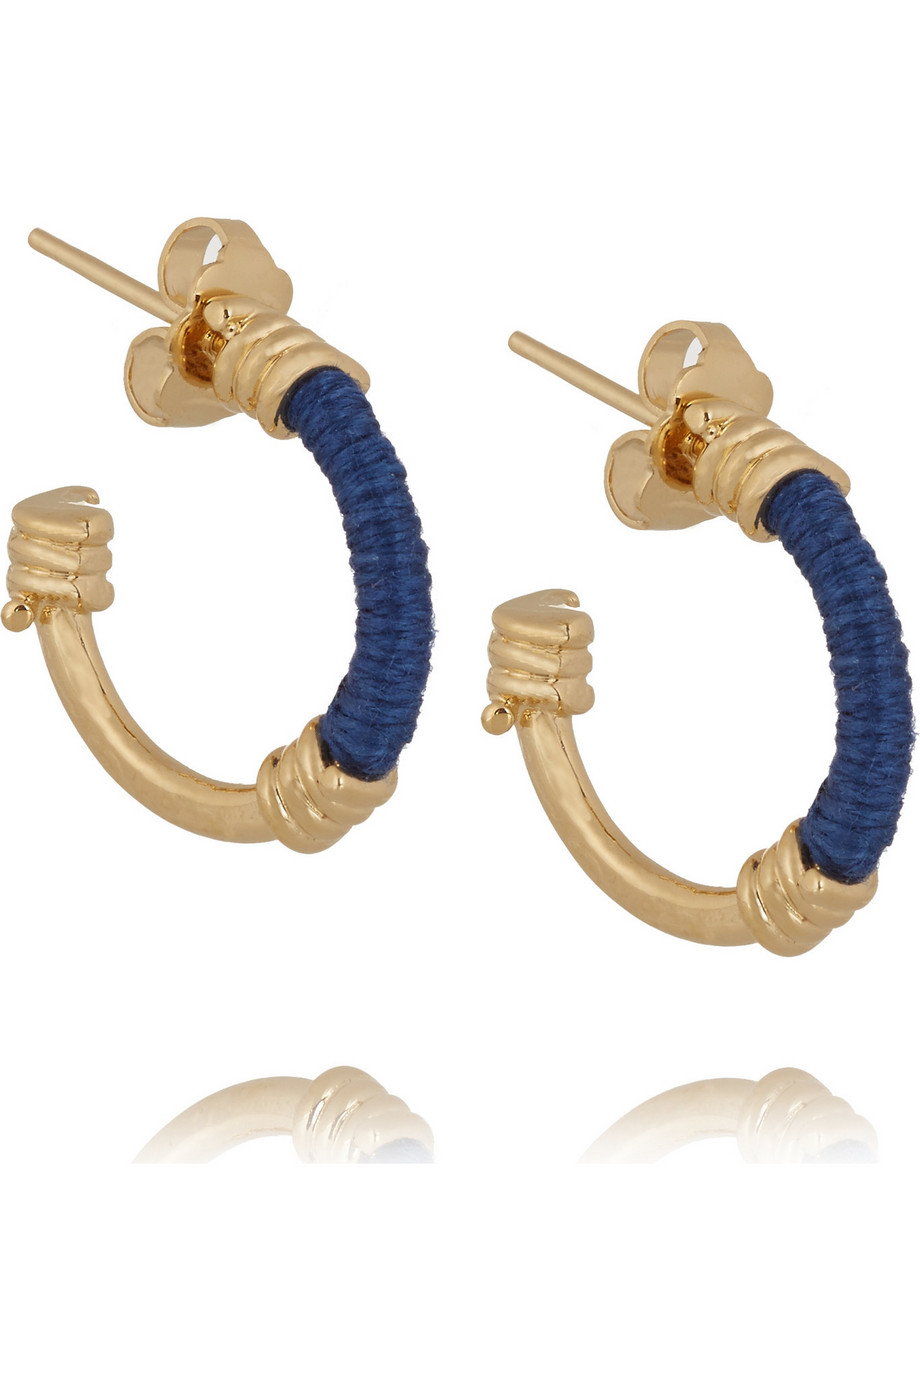 Mini Creoles Gold-Plated and Cotton Hoop Earrings, Aurélie Bidermann, Blue, Women's